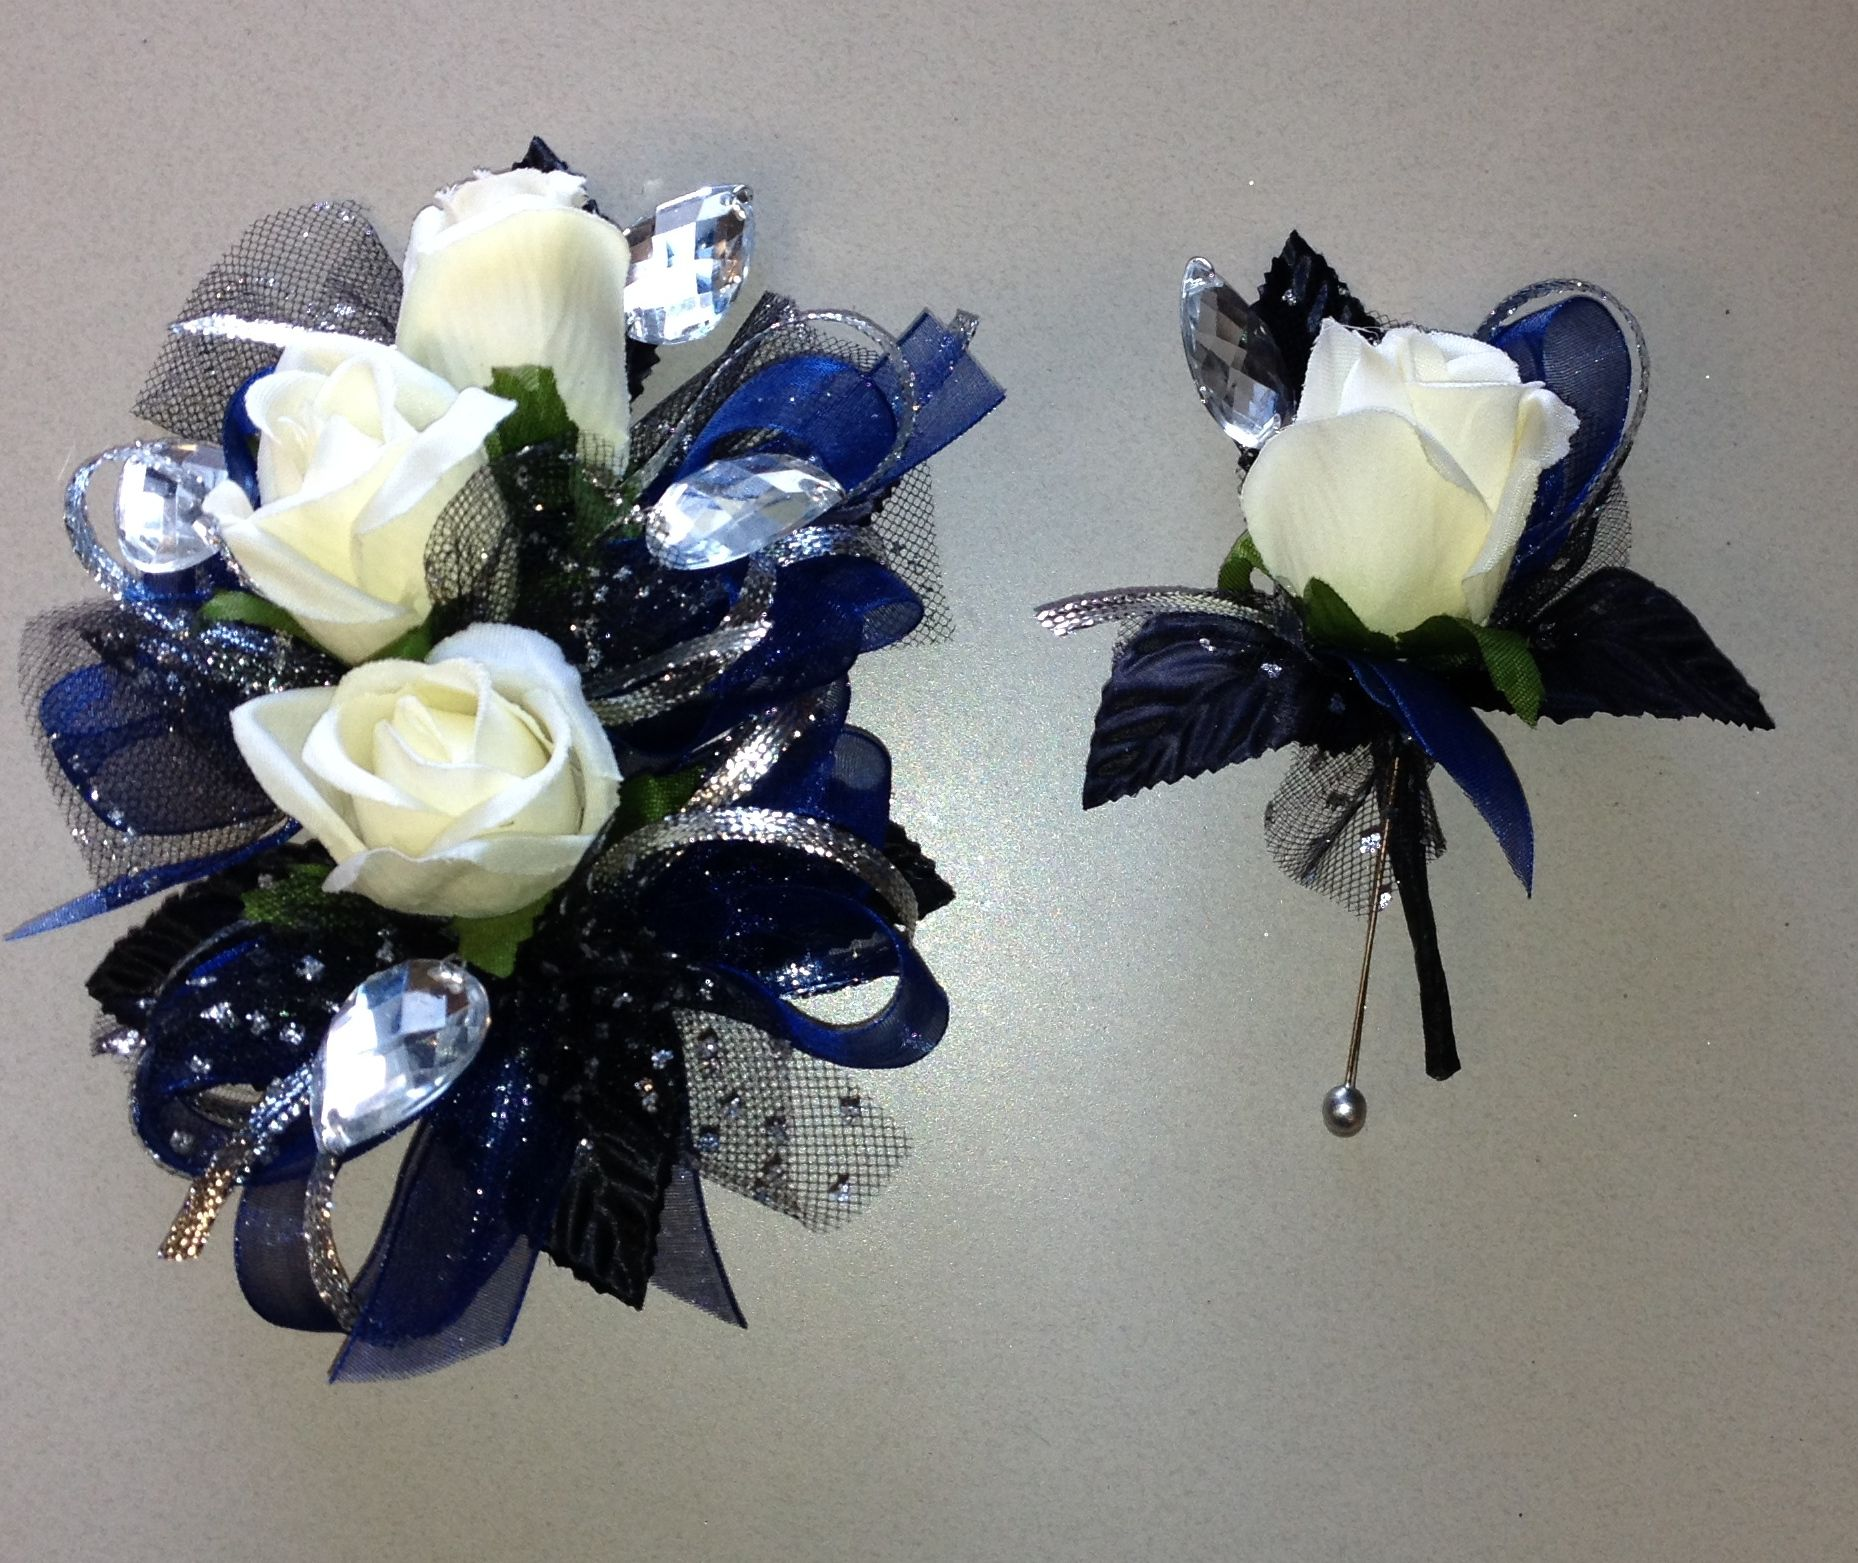 silver corsage and boutonniere - Google Search | Flowers | Pinterest ...